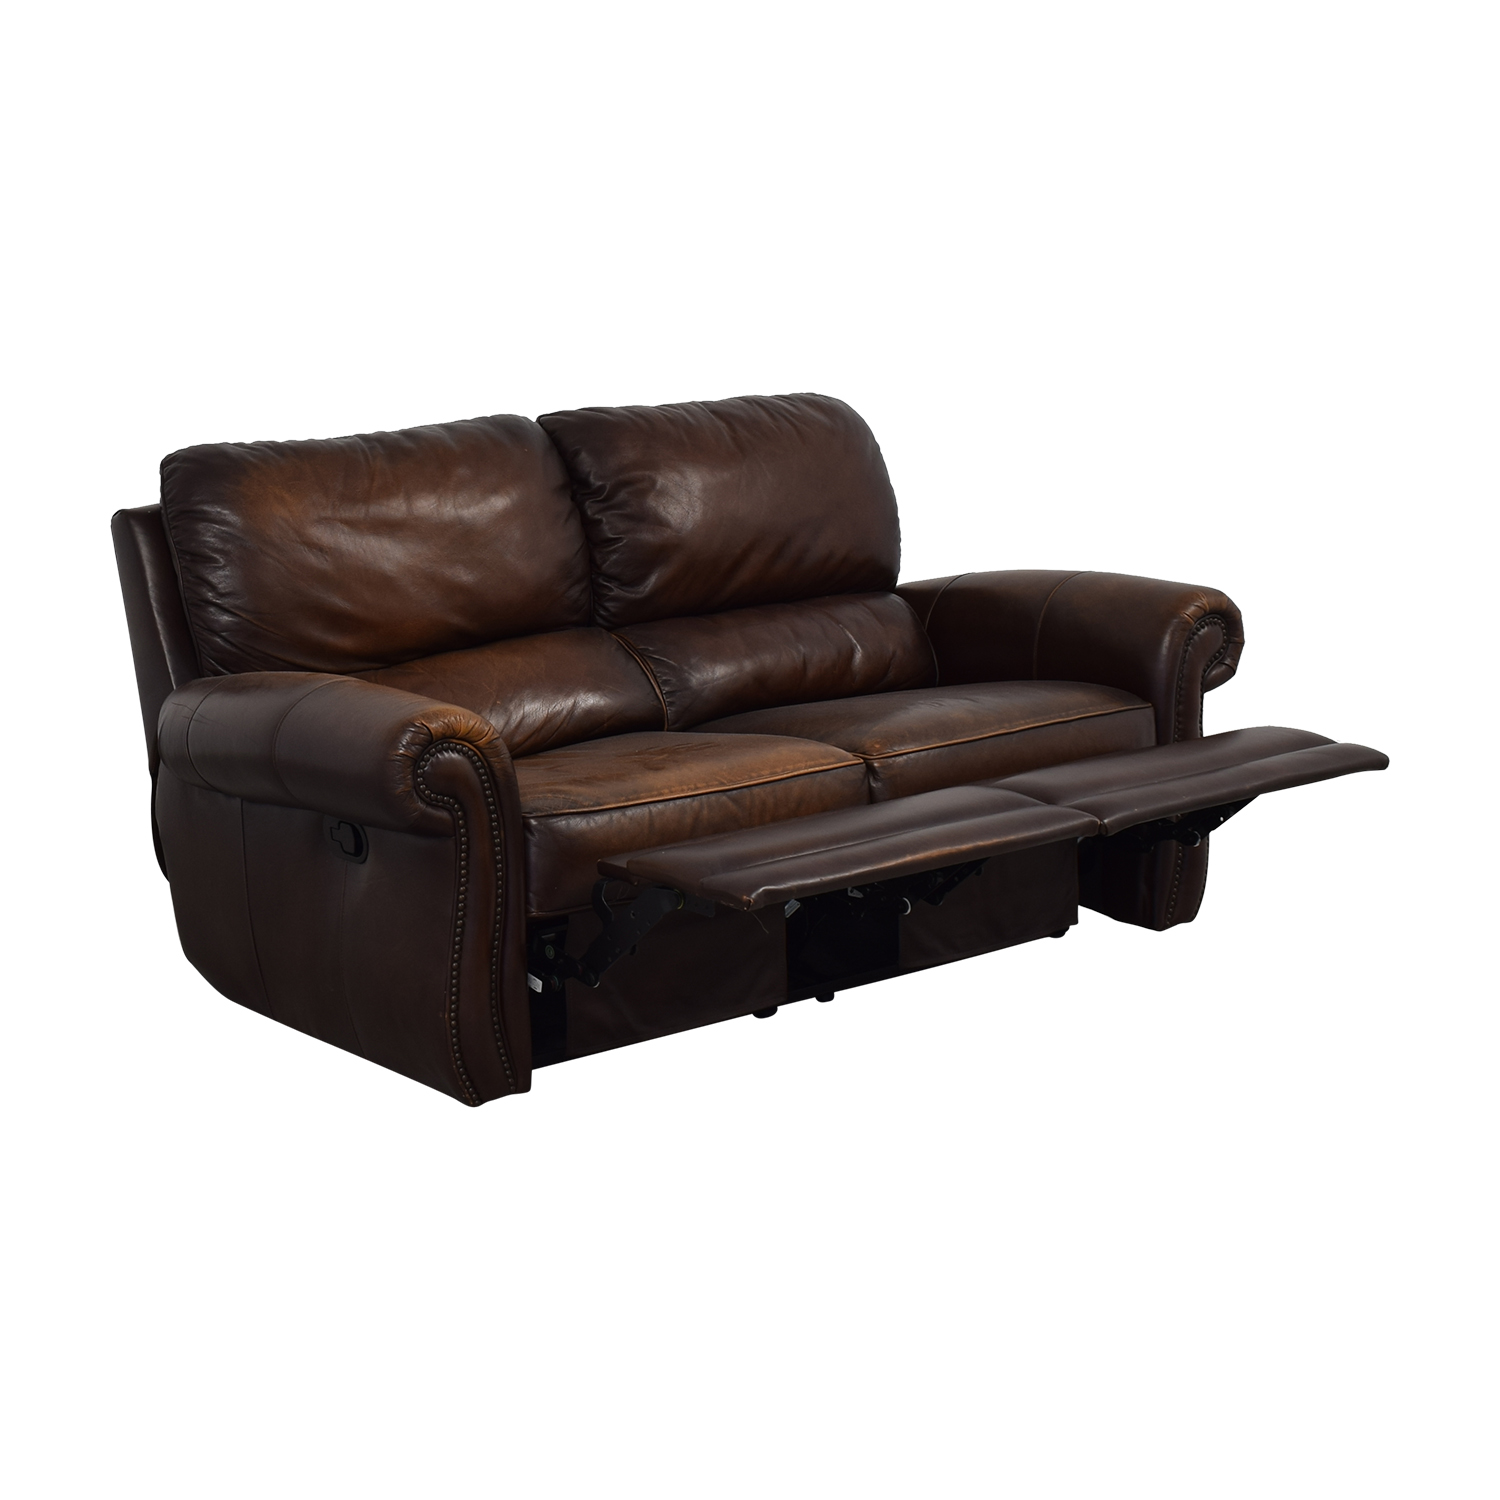 Raymour & Flanigan Raymour & Flanigan Leather Loveseat Recliner coupon